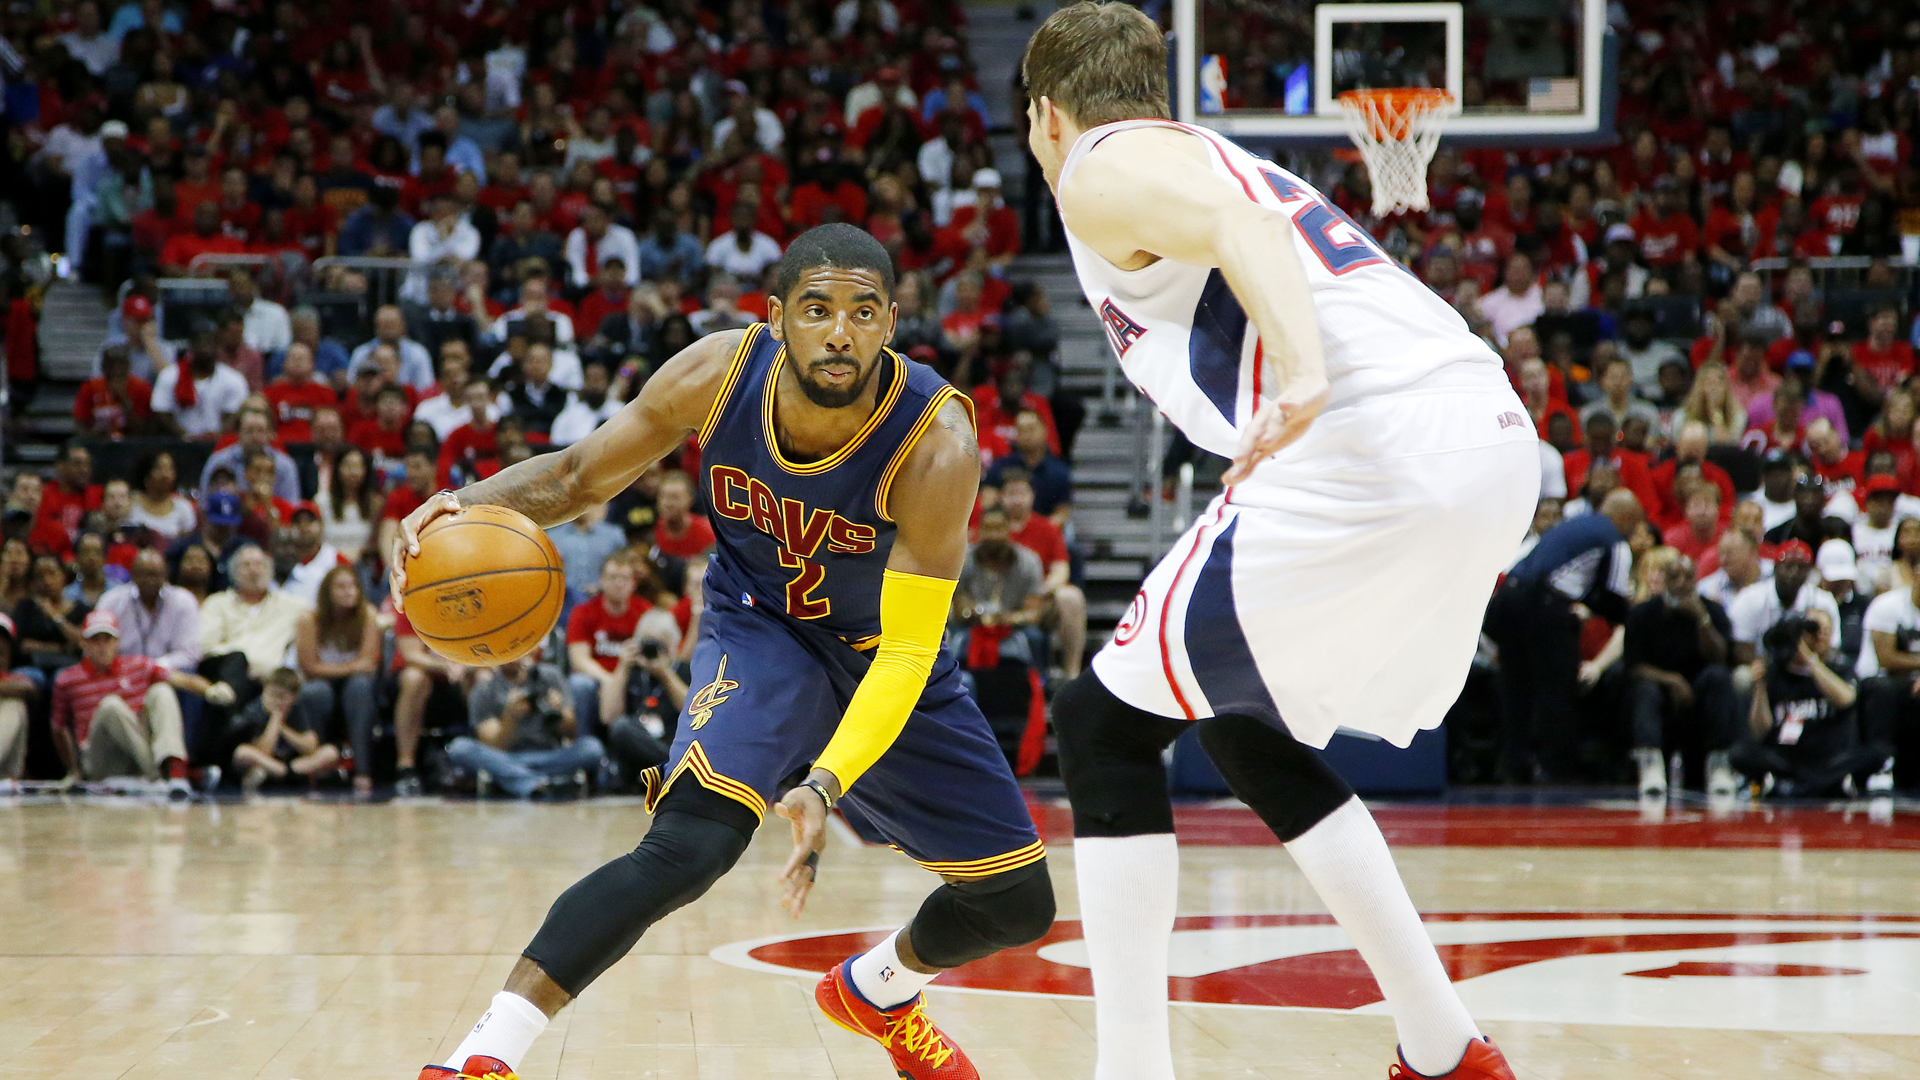 Basketball | Kyrie Irving 'questionable' for game three | SPORTAL